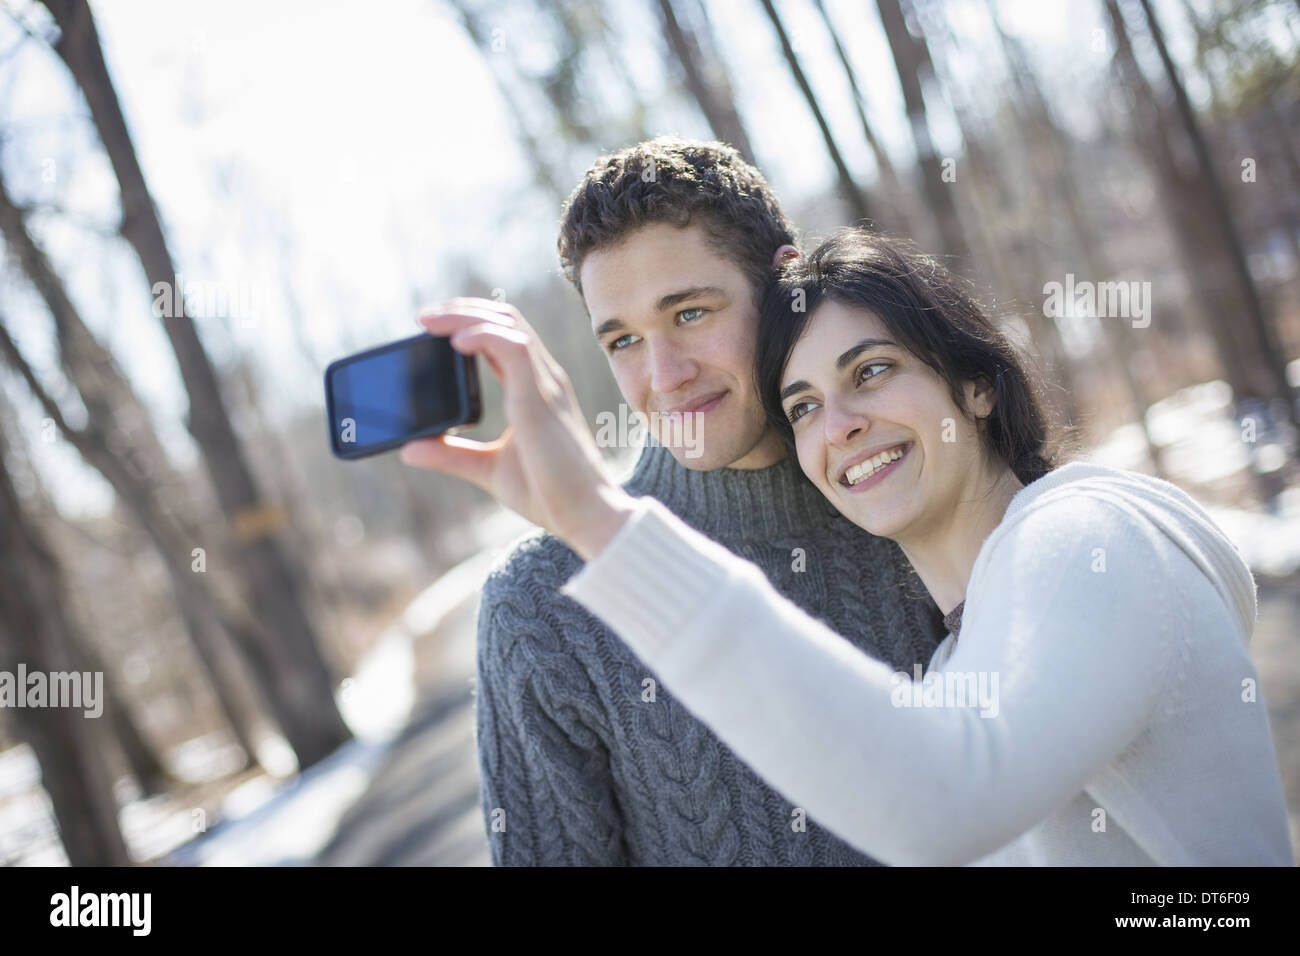 A couple outdoors on a snowy day. Woman holding a camera phone, taking photographs at arms length. - Stock Image